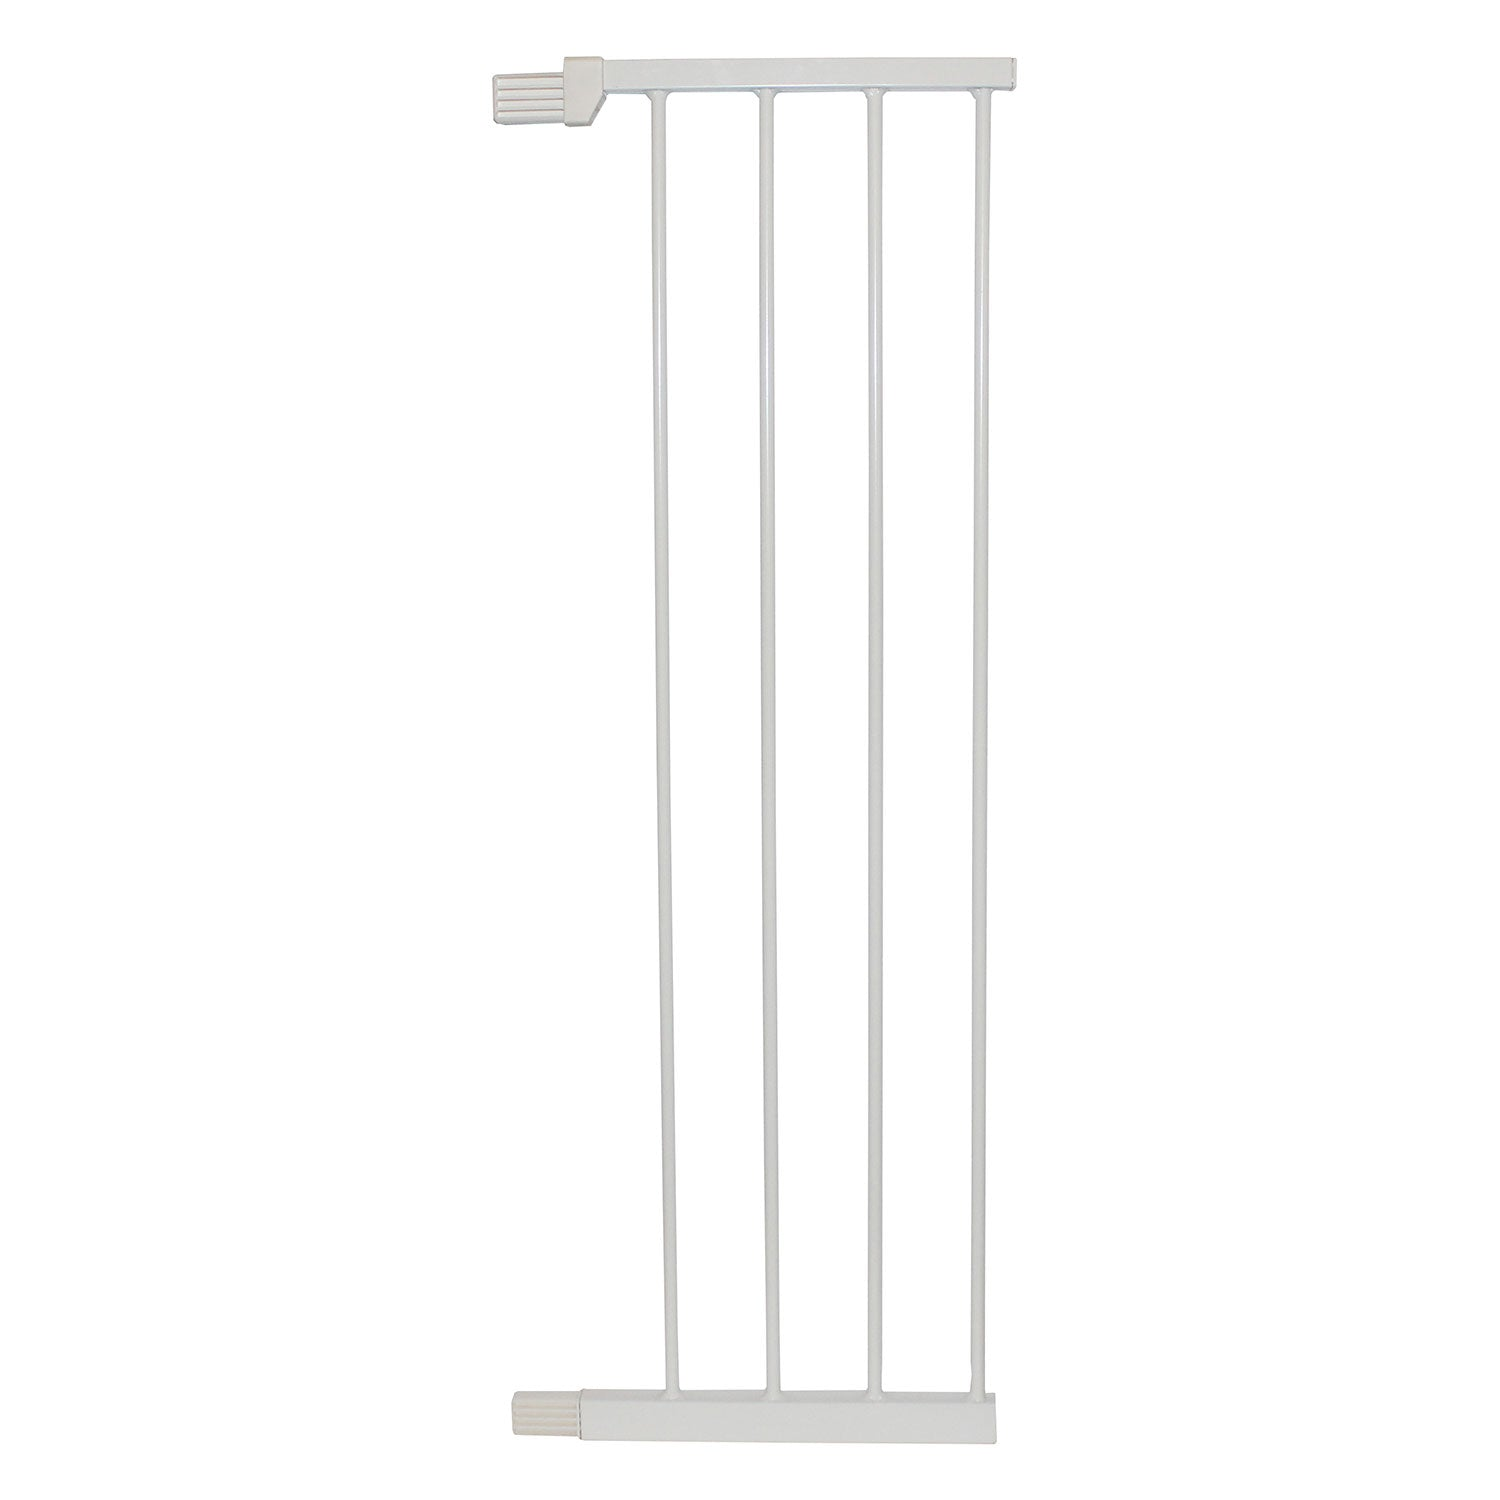 "Cardinal Gates Extra Tall Premium Pressure Pet Gate Extension White 11"" x 2"" x 36"" Dog Gates - London the Local"